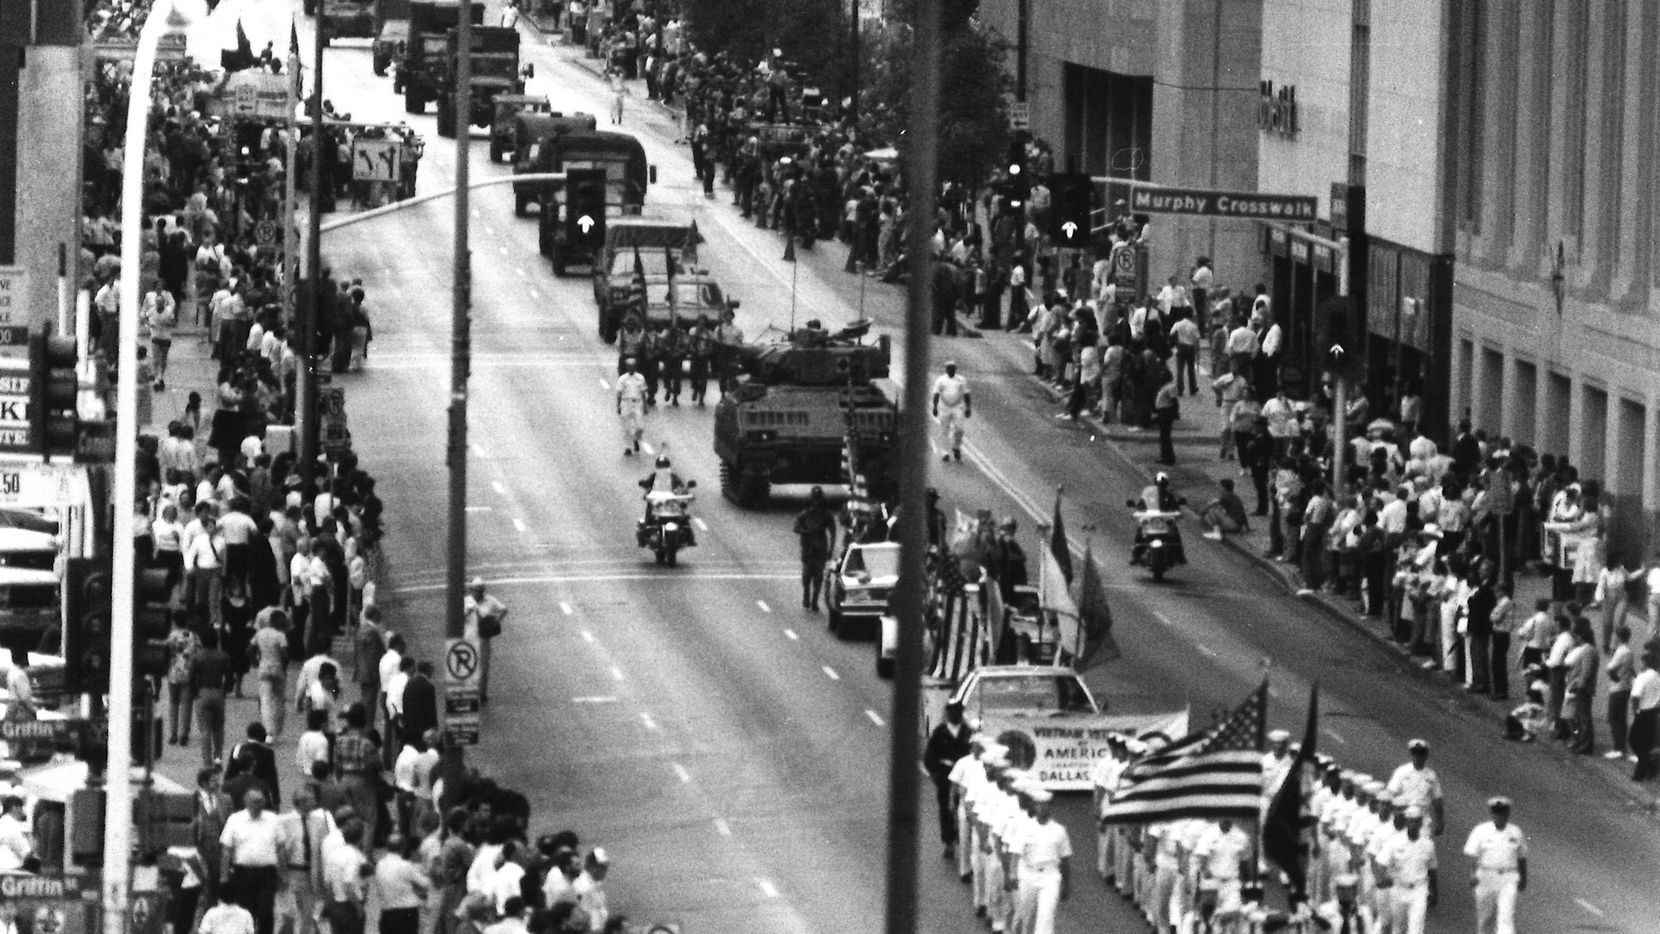 Armed Forces parade in downtown Dallas. The parade was the highlight of a three-day celebration of Armed Forces Week.